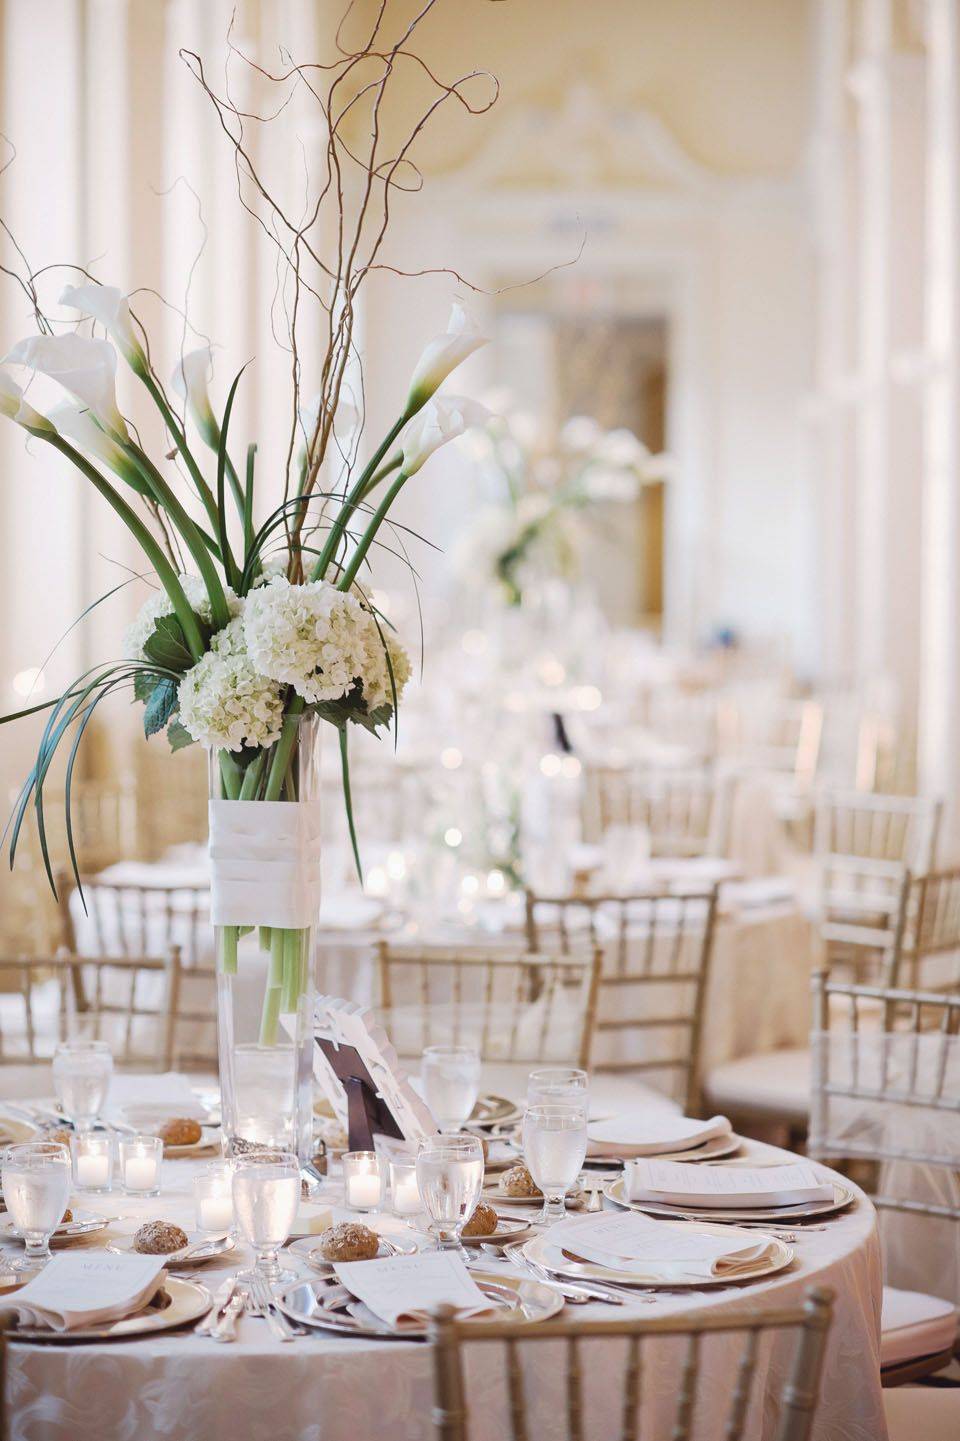 Tall White Wedding Centerpiece Ideas | Pinterest | Wedding ...